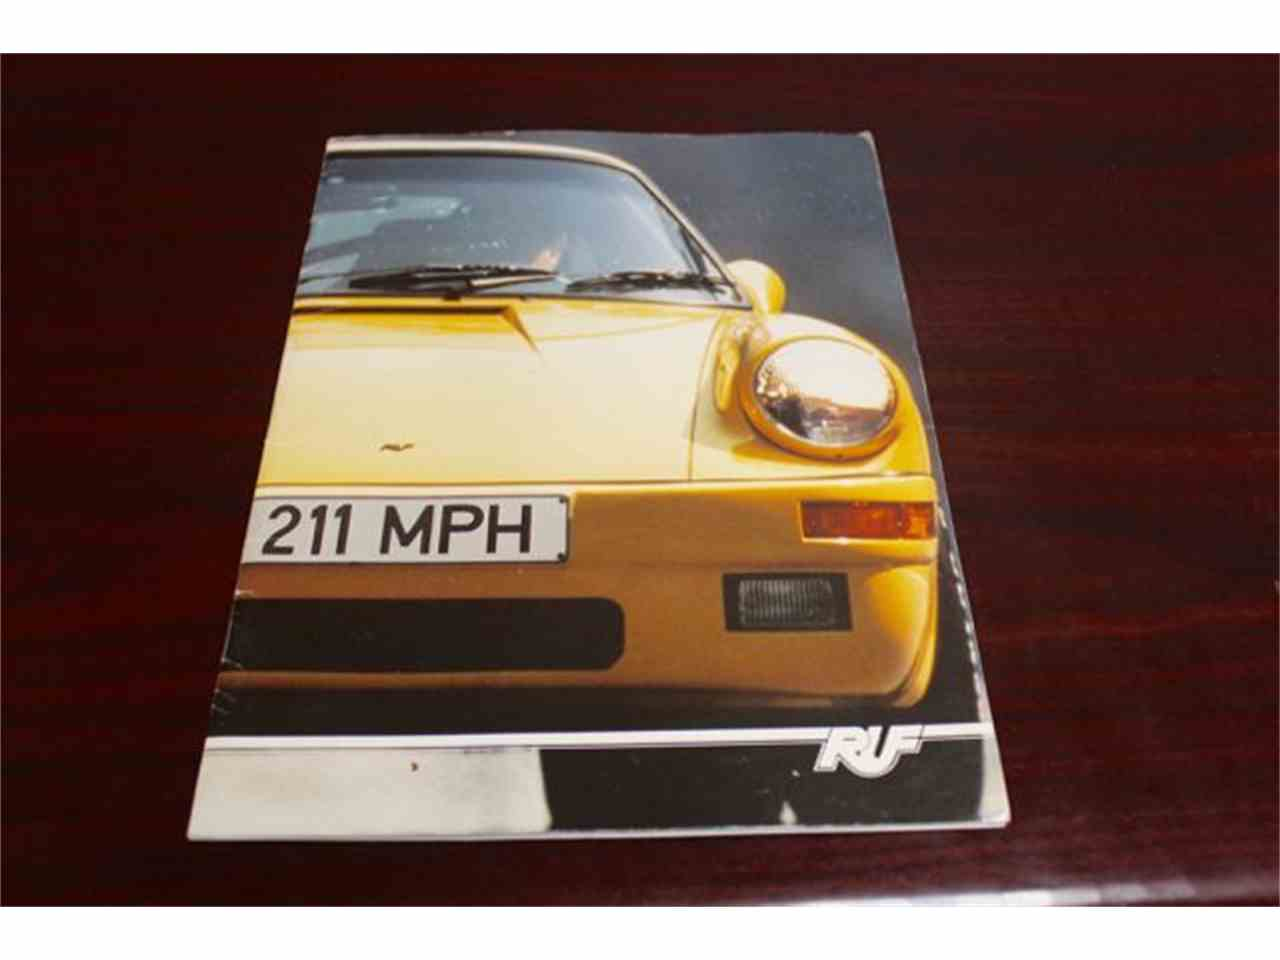 Large Picture of 1984 Porsche 911 located in Denver  Colorado - $69,900.00 Offered by Worldwide Vintage Autos - JMG1